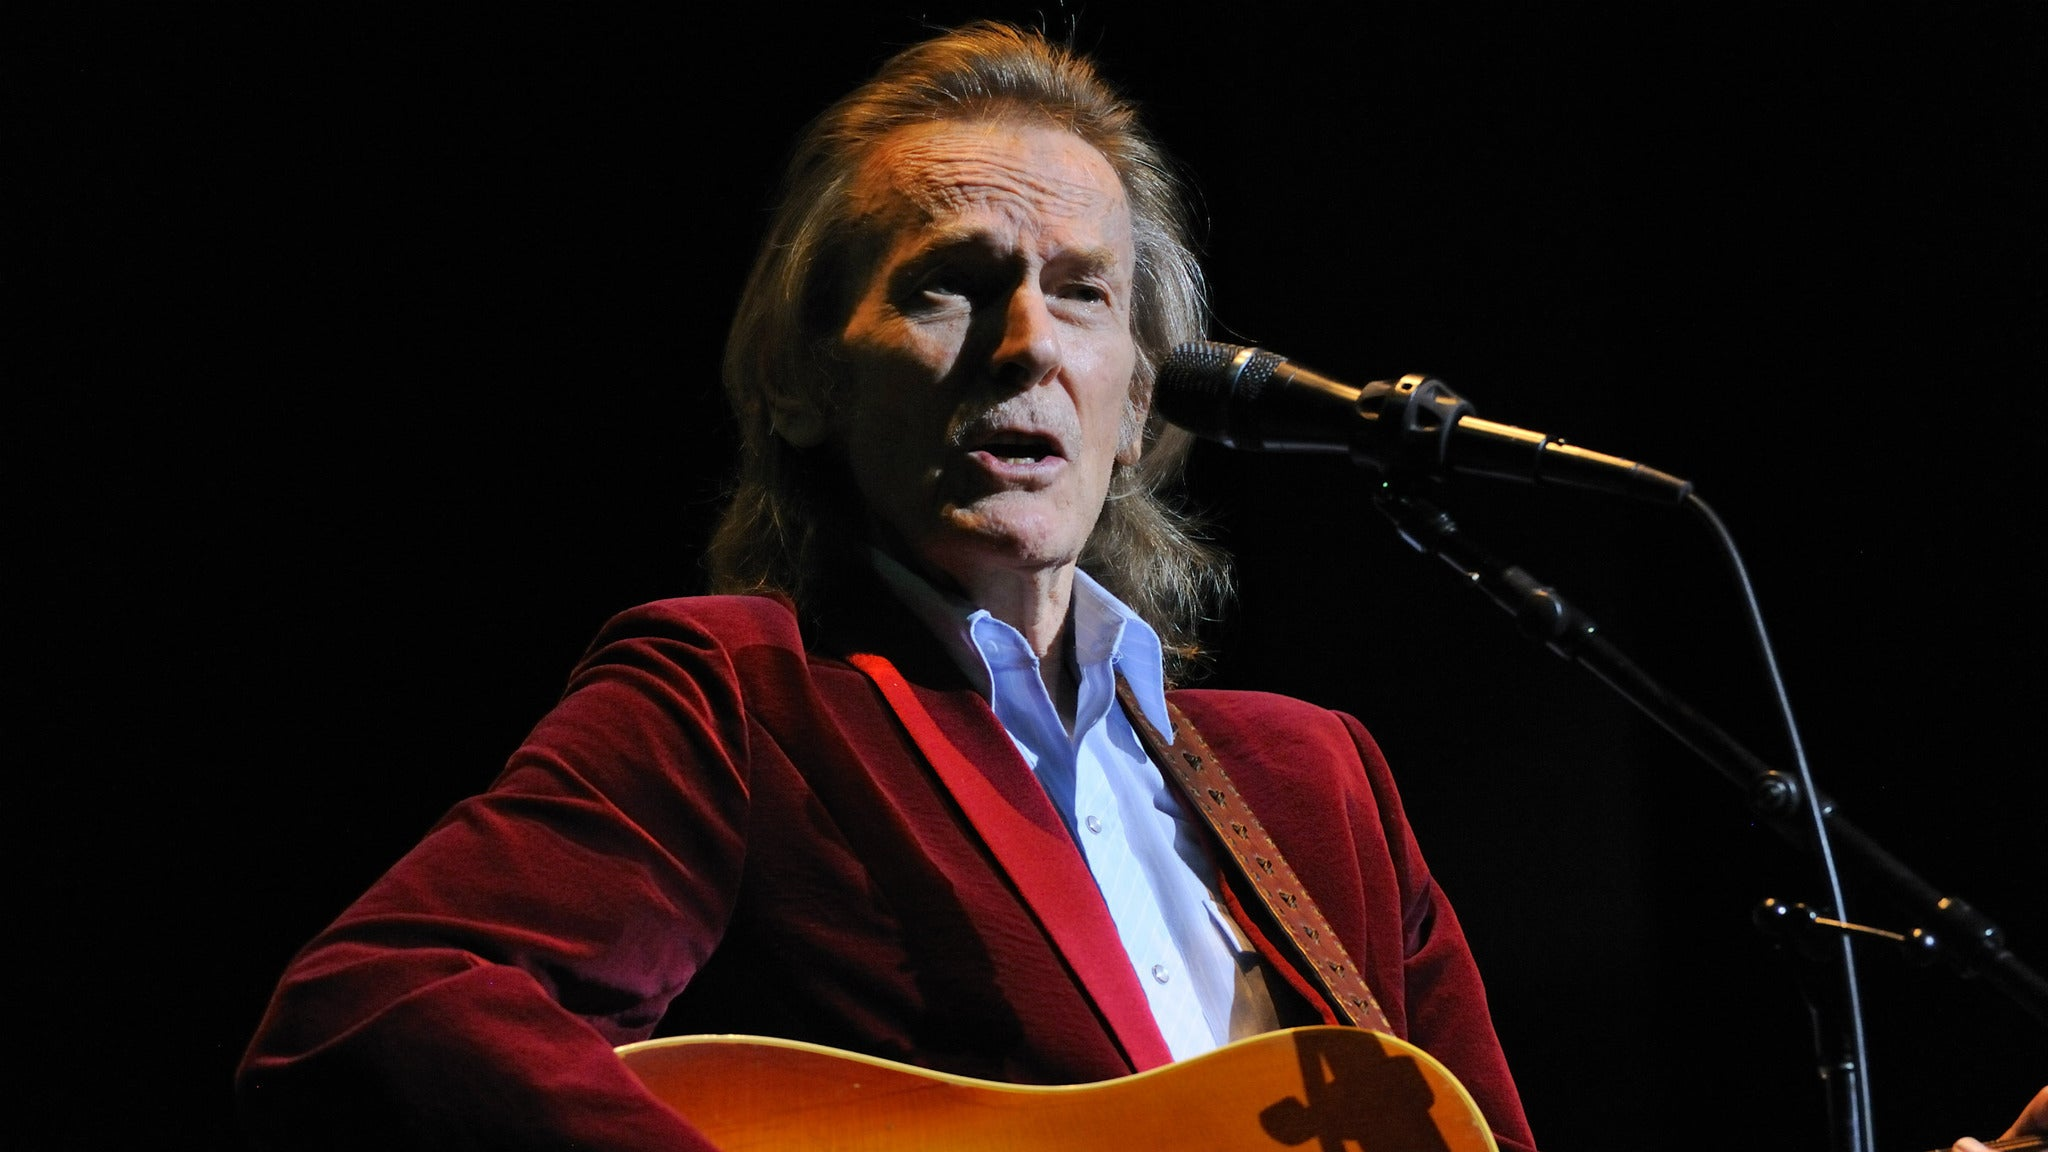 Gordon Lightfoot at Bethel Woods Center for the Arts